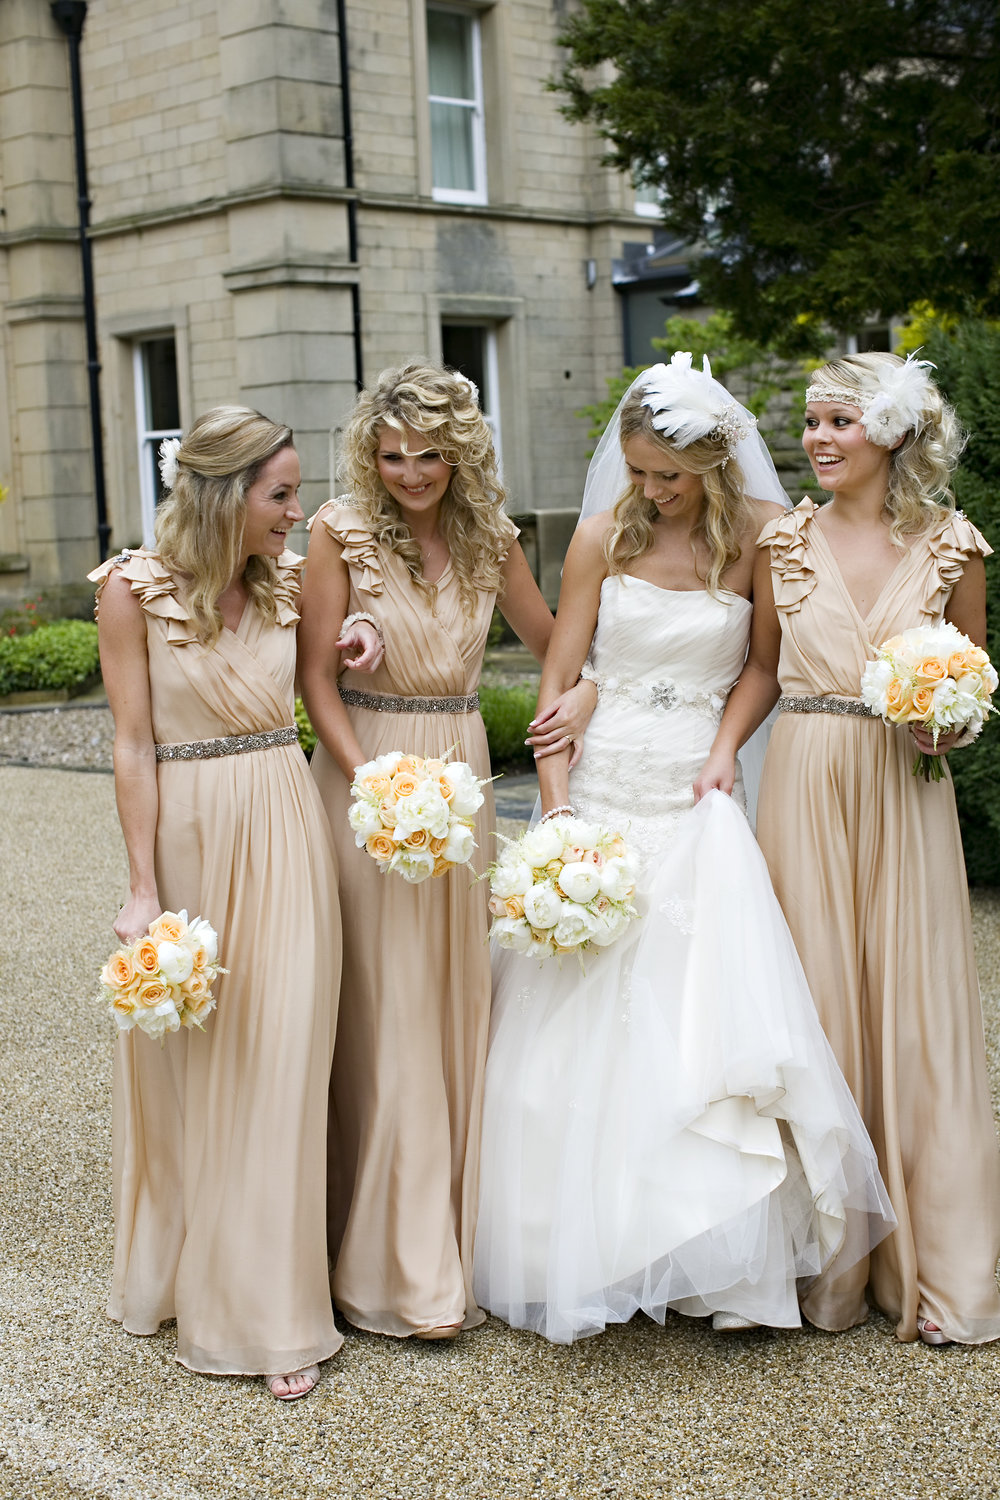 Peony bride and bridesmaid flowers from award winning Derbyshire florist, Tineke.